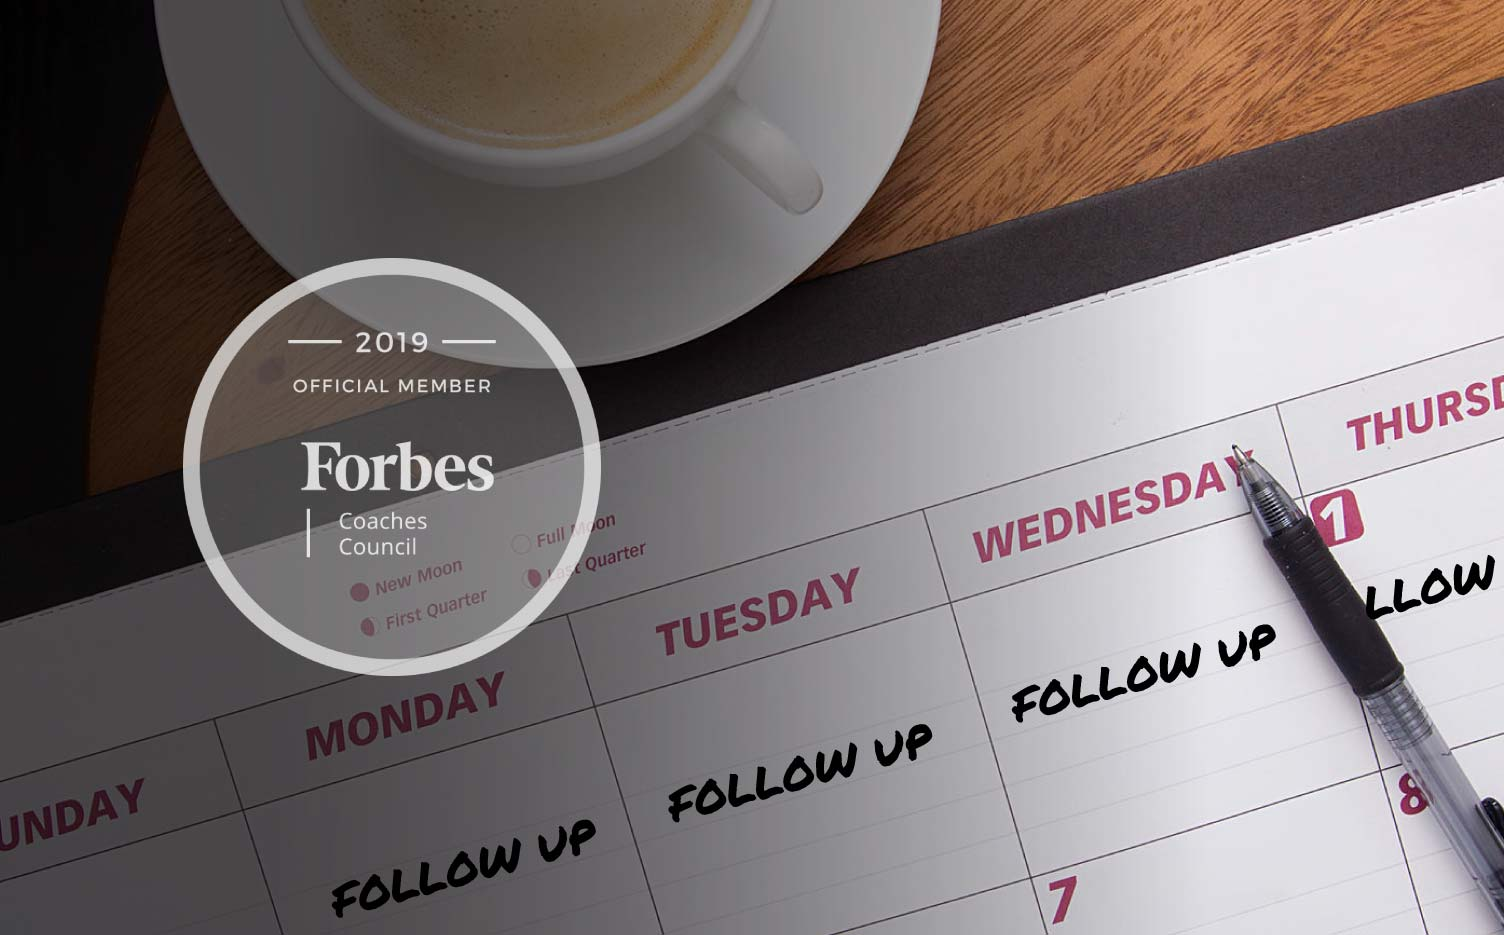 Jon Dwoskin Forbes Coaches Council Article: Why Following Up Is Key If You Want To Grow Your Business - calendar with daily follow ups scheduled